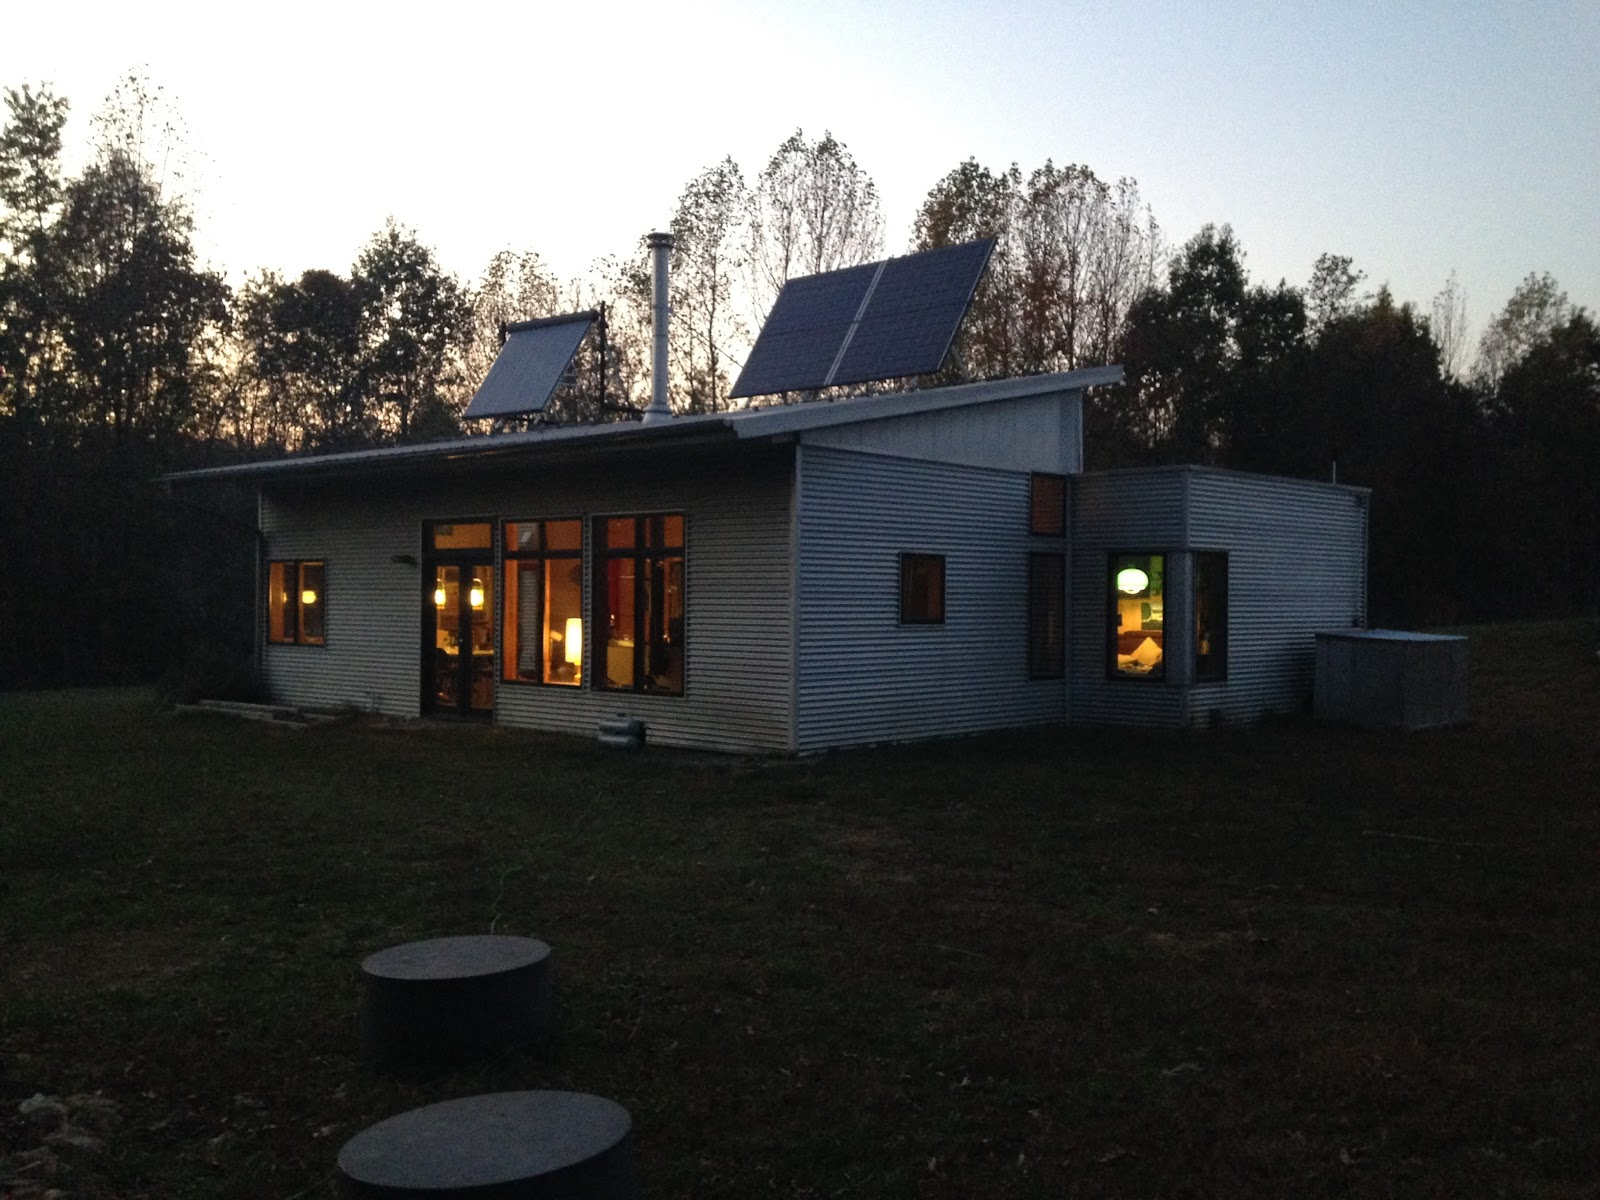 Passive solar prefab thinks on passive house prefab for Passive solar prefab homes